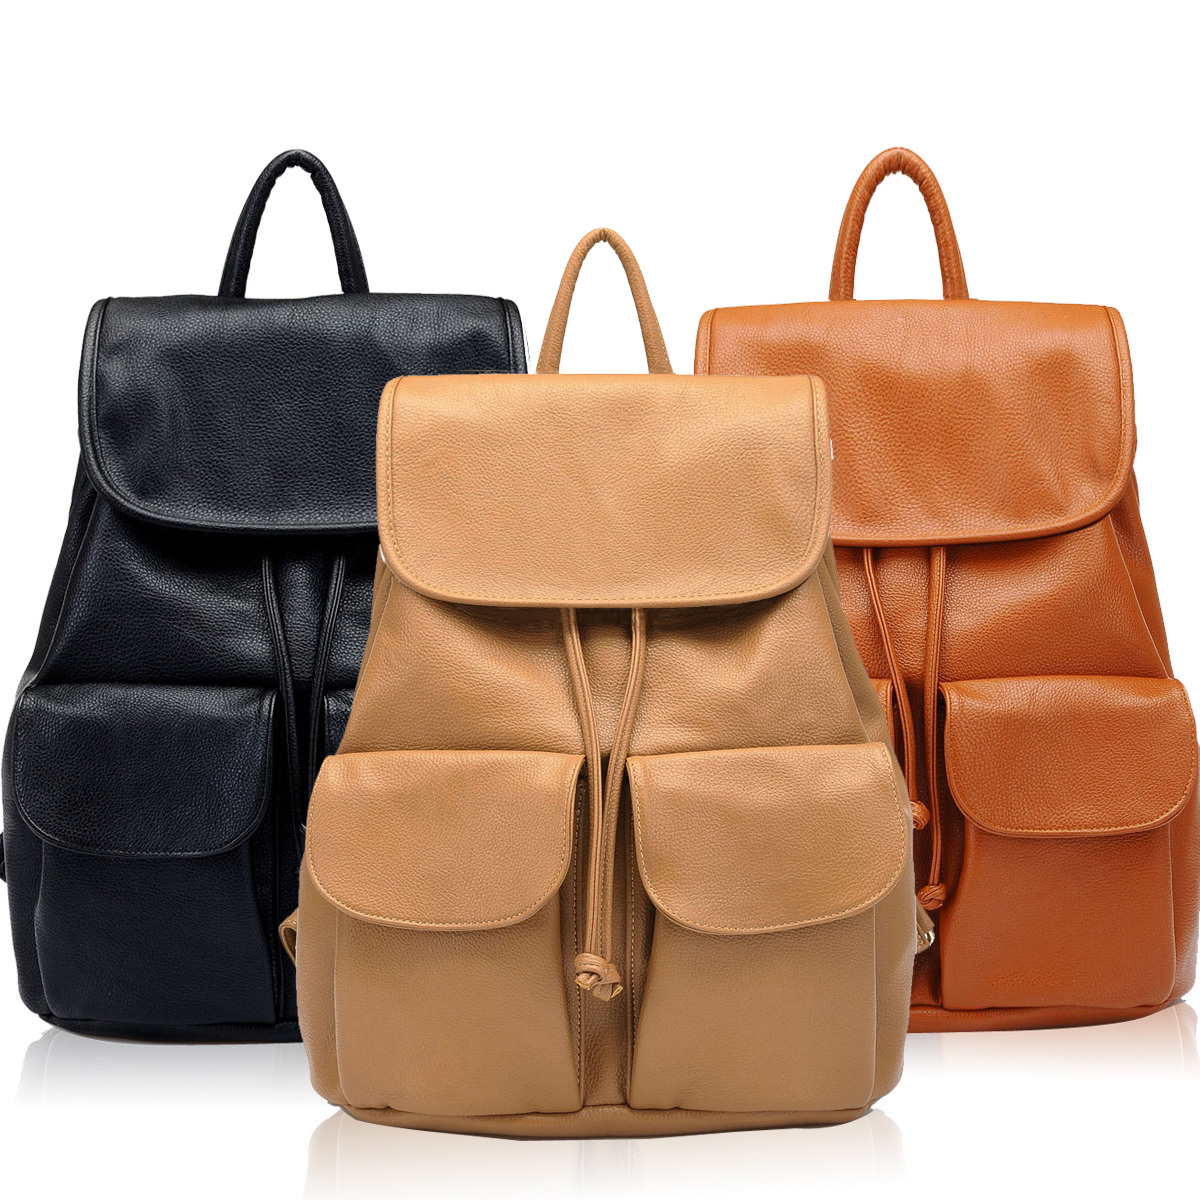 Leather Backpacks Women 6nUNiR8H